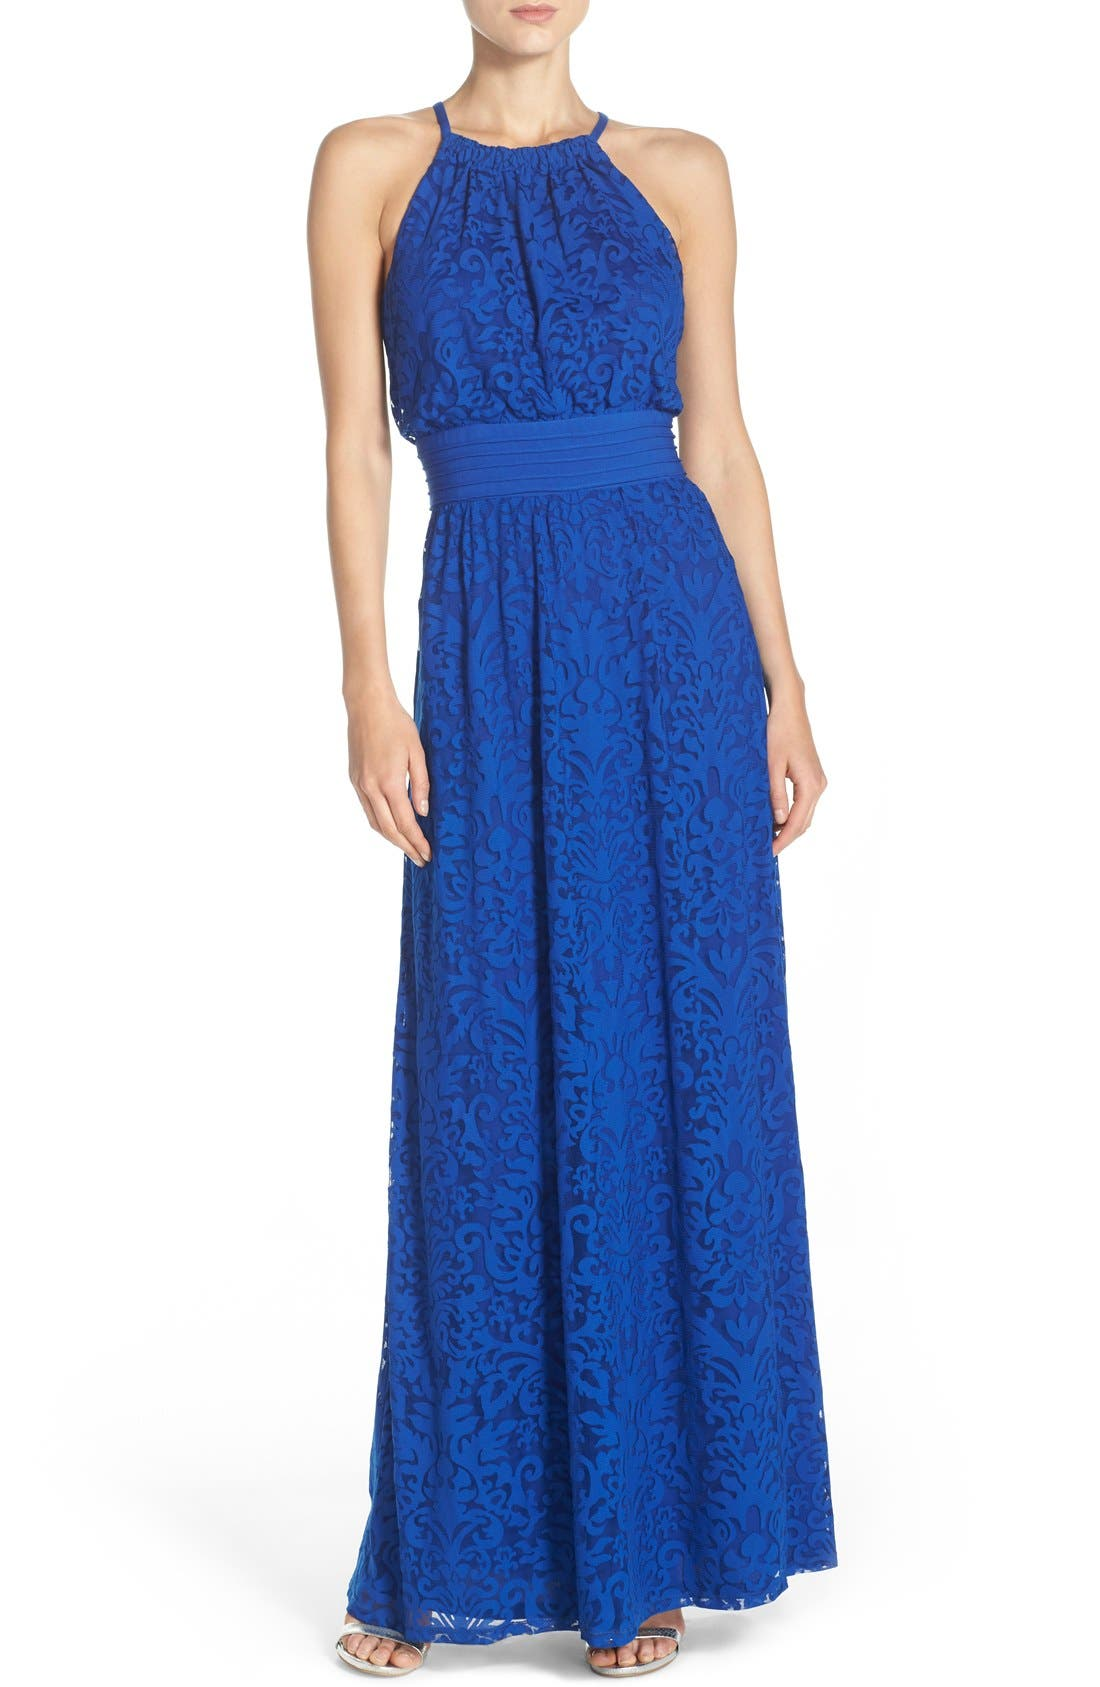 Alternate Image 1 Selected - Maggy London Lace Halter Maxi Dress